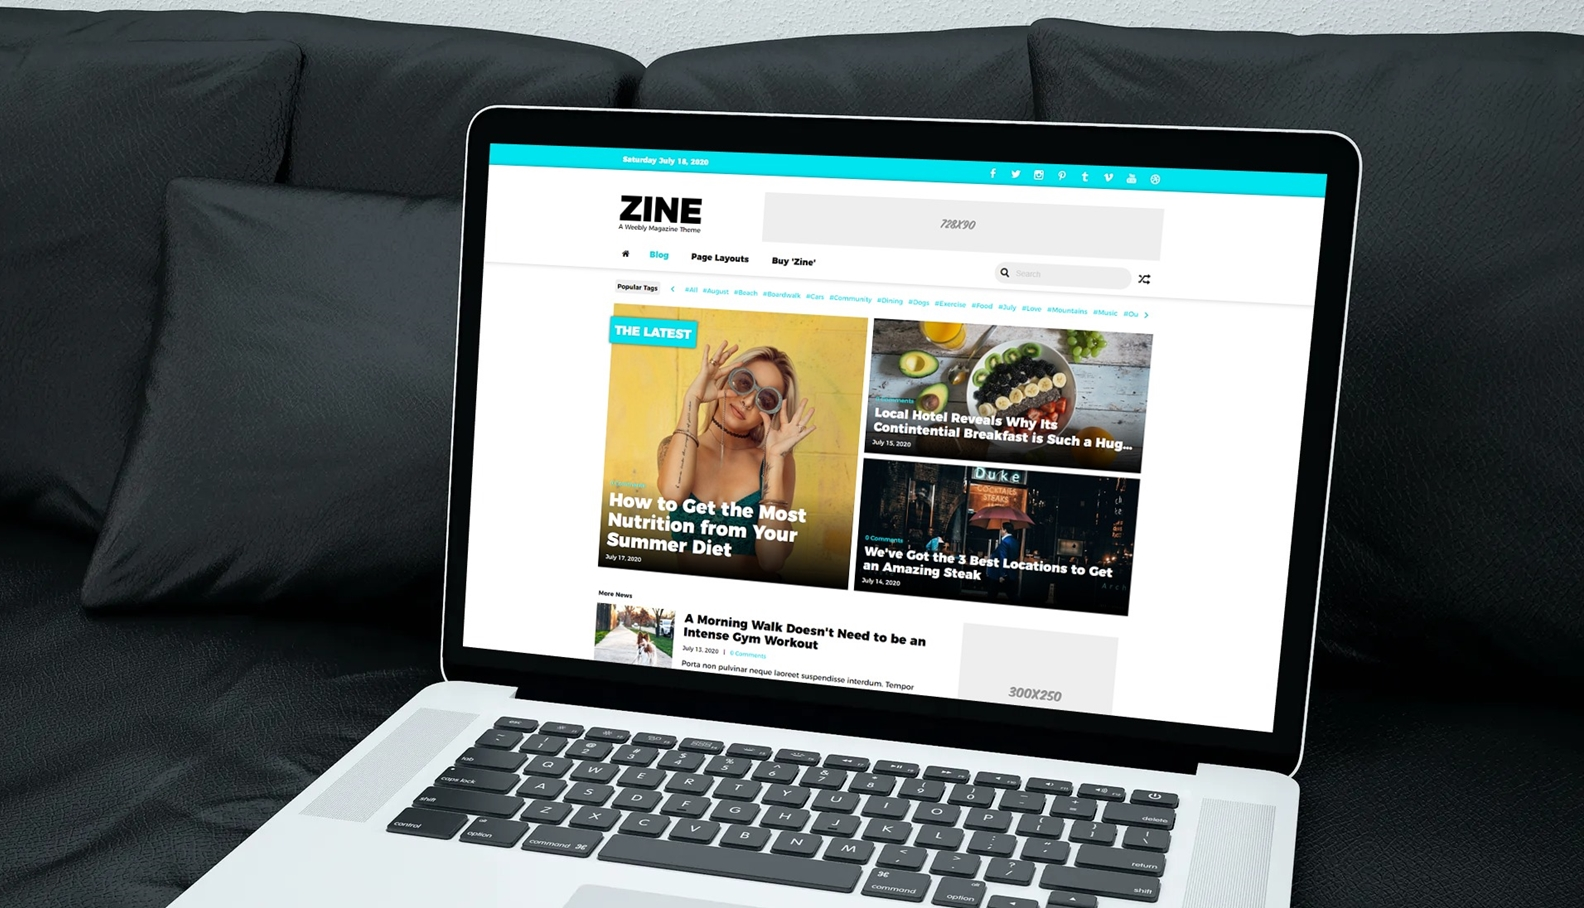 Zine Weebly Magazine Theme Accent Color